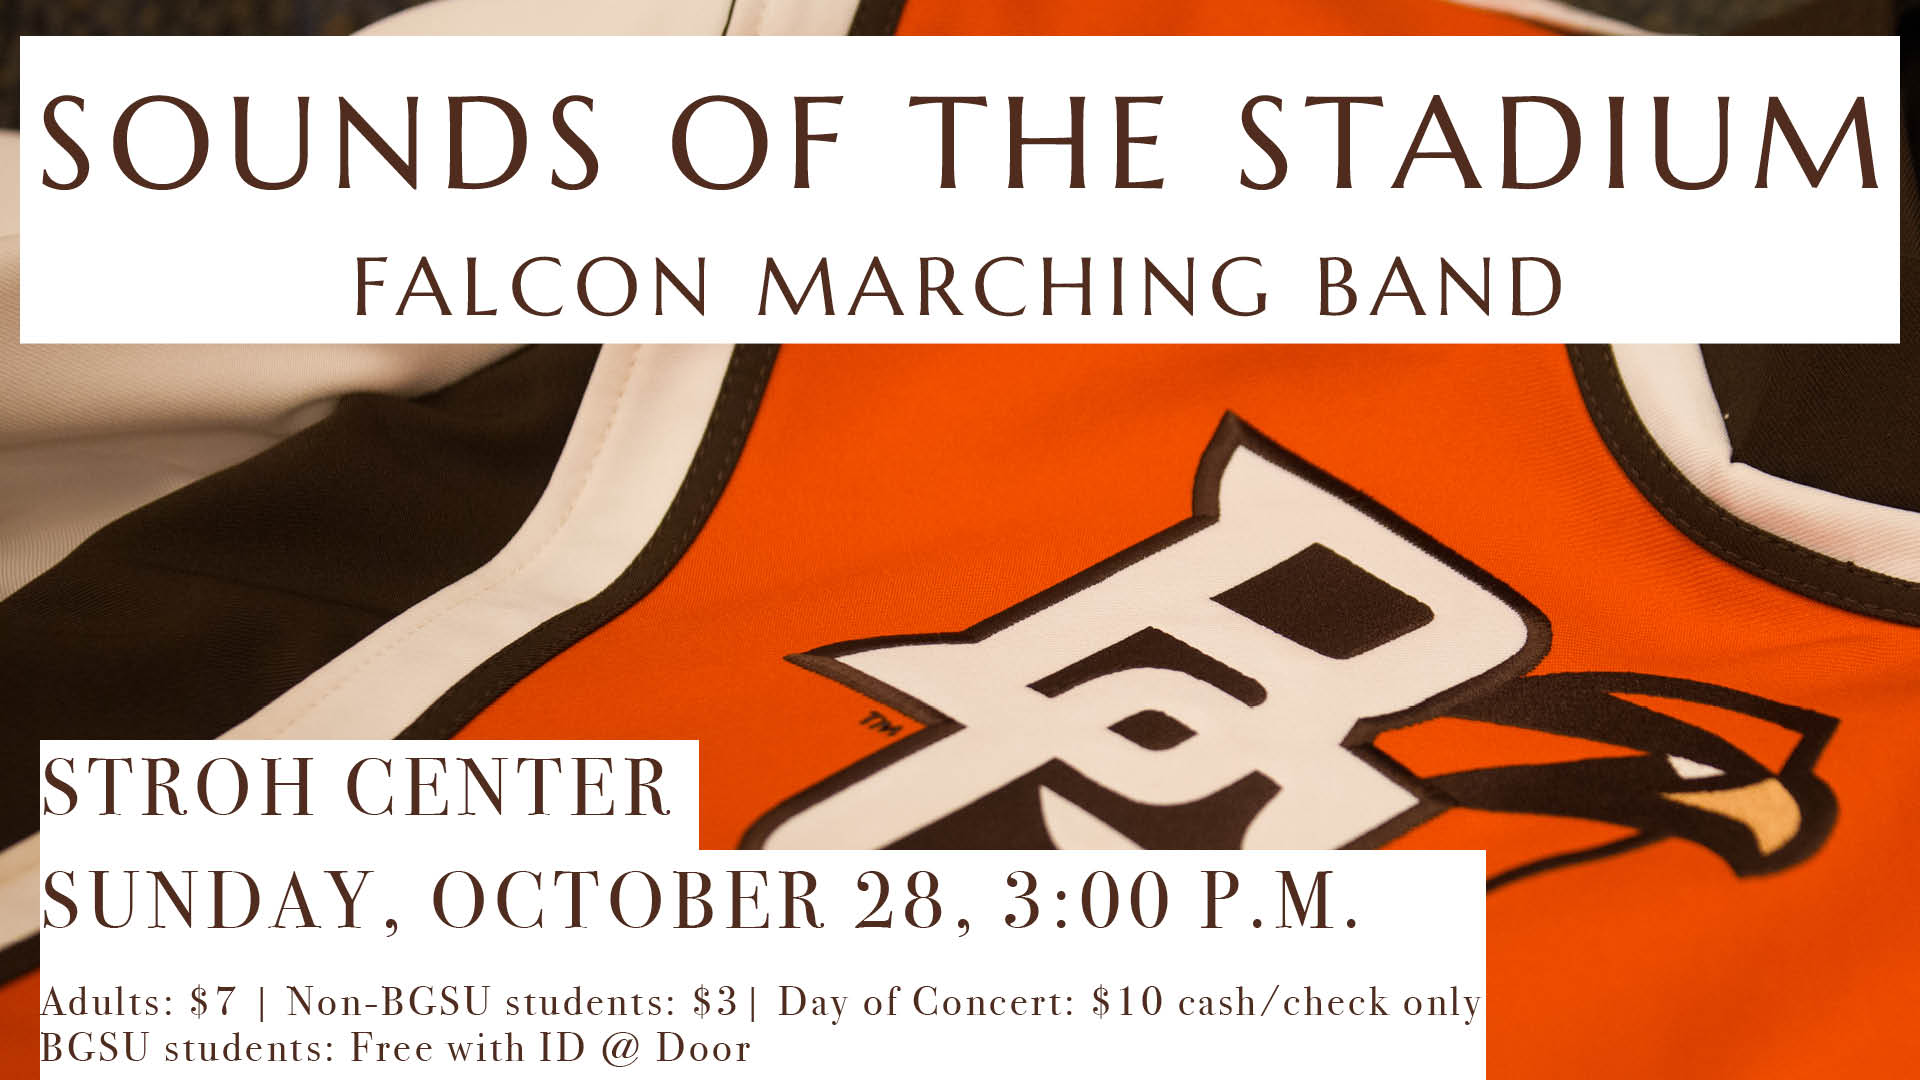 Sounds Of The Stadium Coming Oct  28 - Bowling Green State